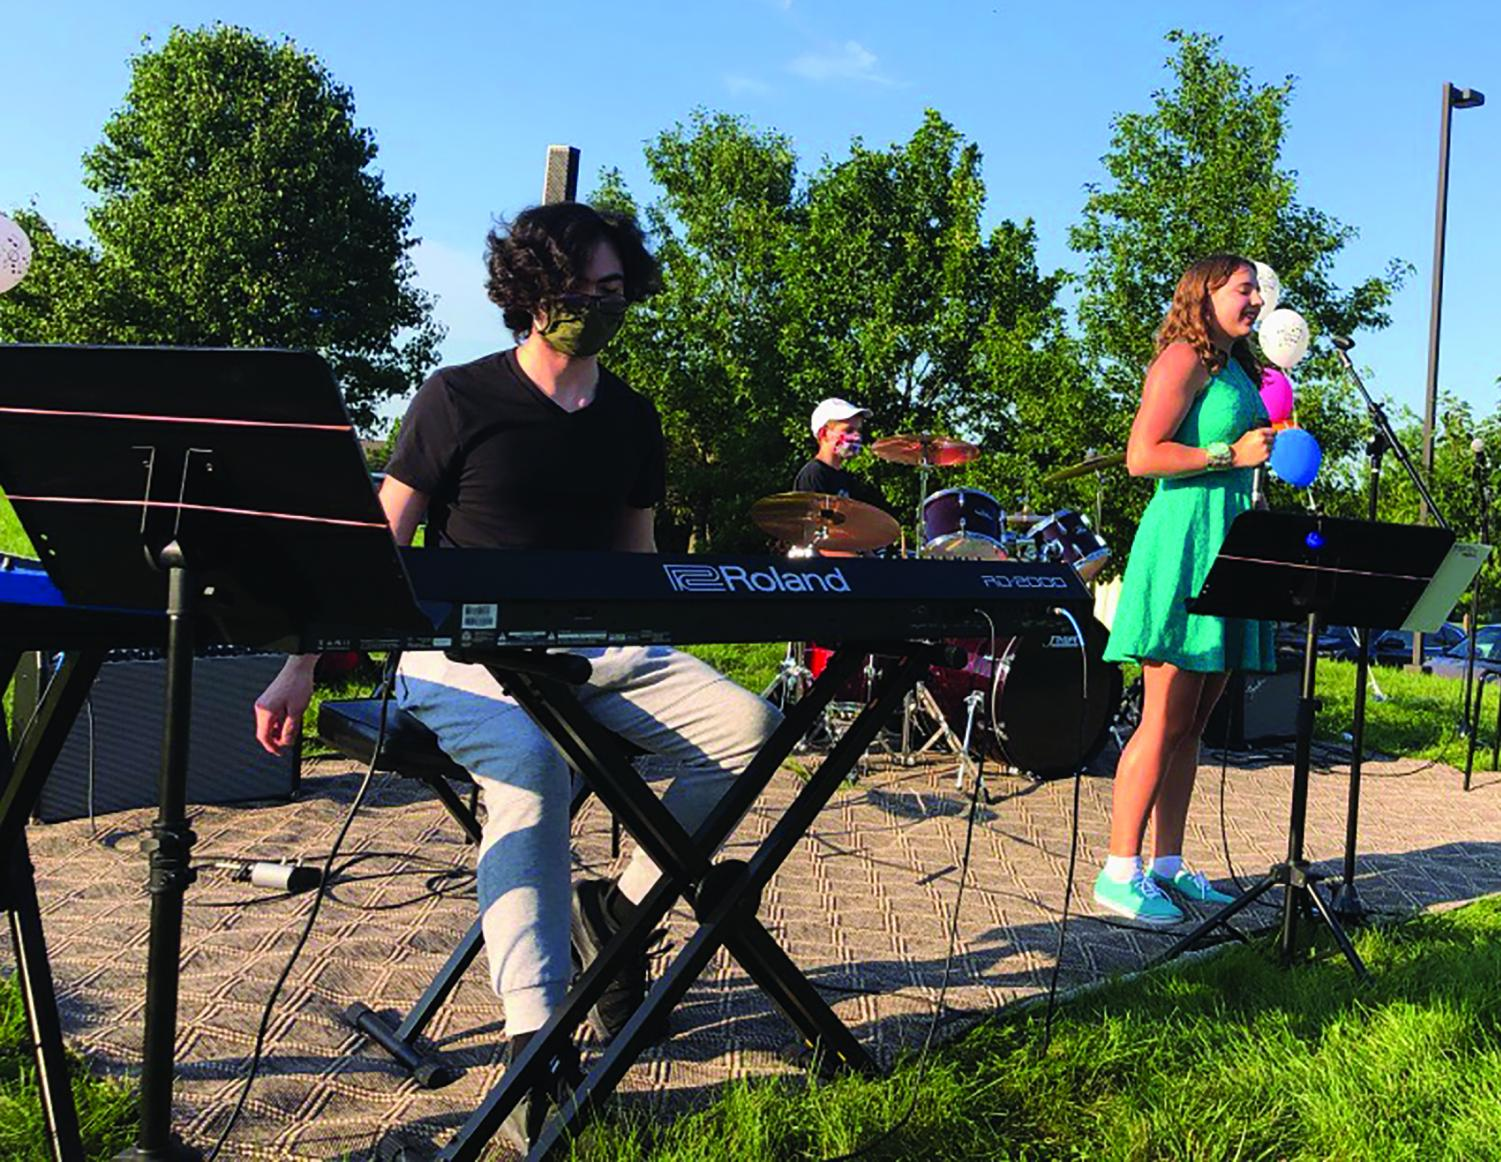 """Mackenzie Edwards (right), lead singer of band """"Lightning in a Bottle"""" and sophomore, sings outside with accompaniment from her bandmates. Edwards said that being involved with the band has allowed her to interact with a vibrant community and share music with others."""